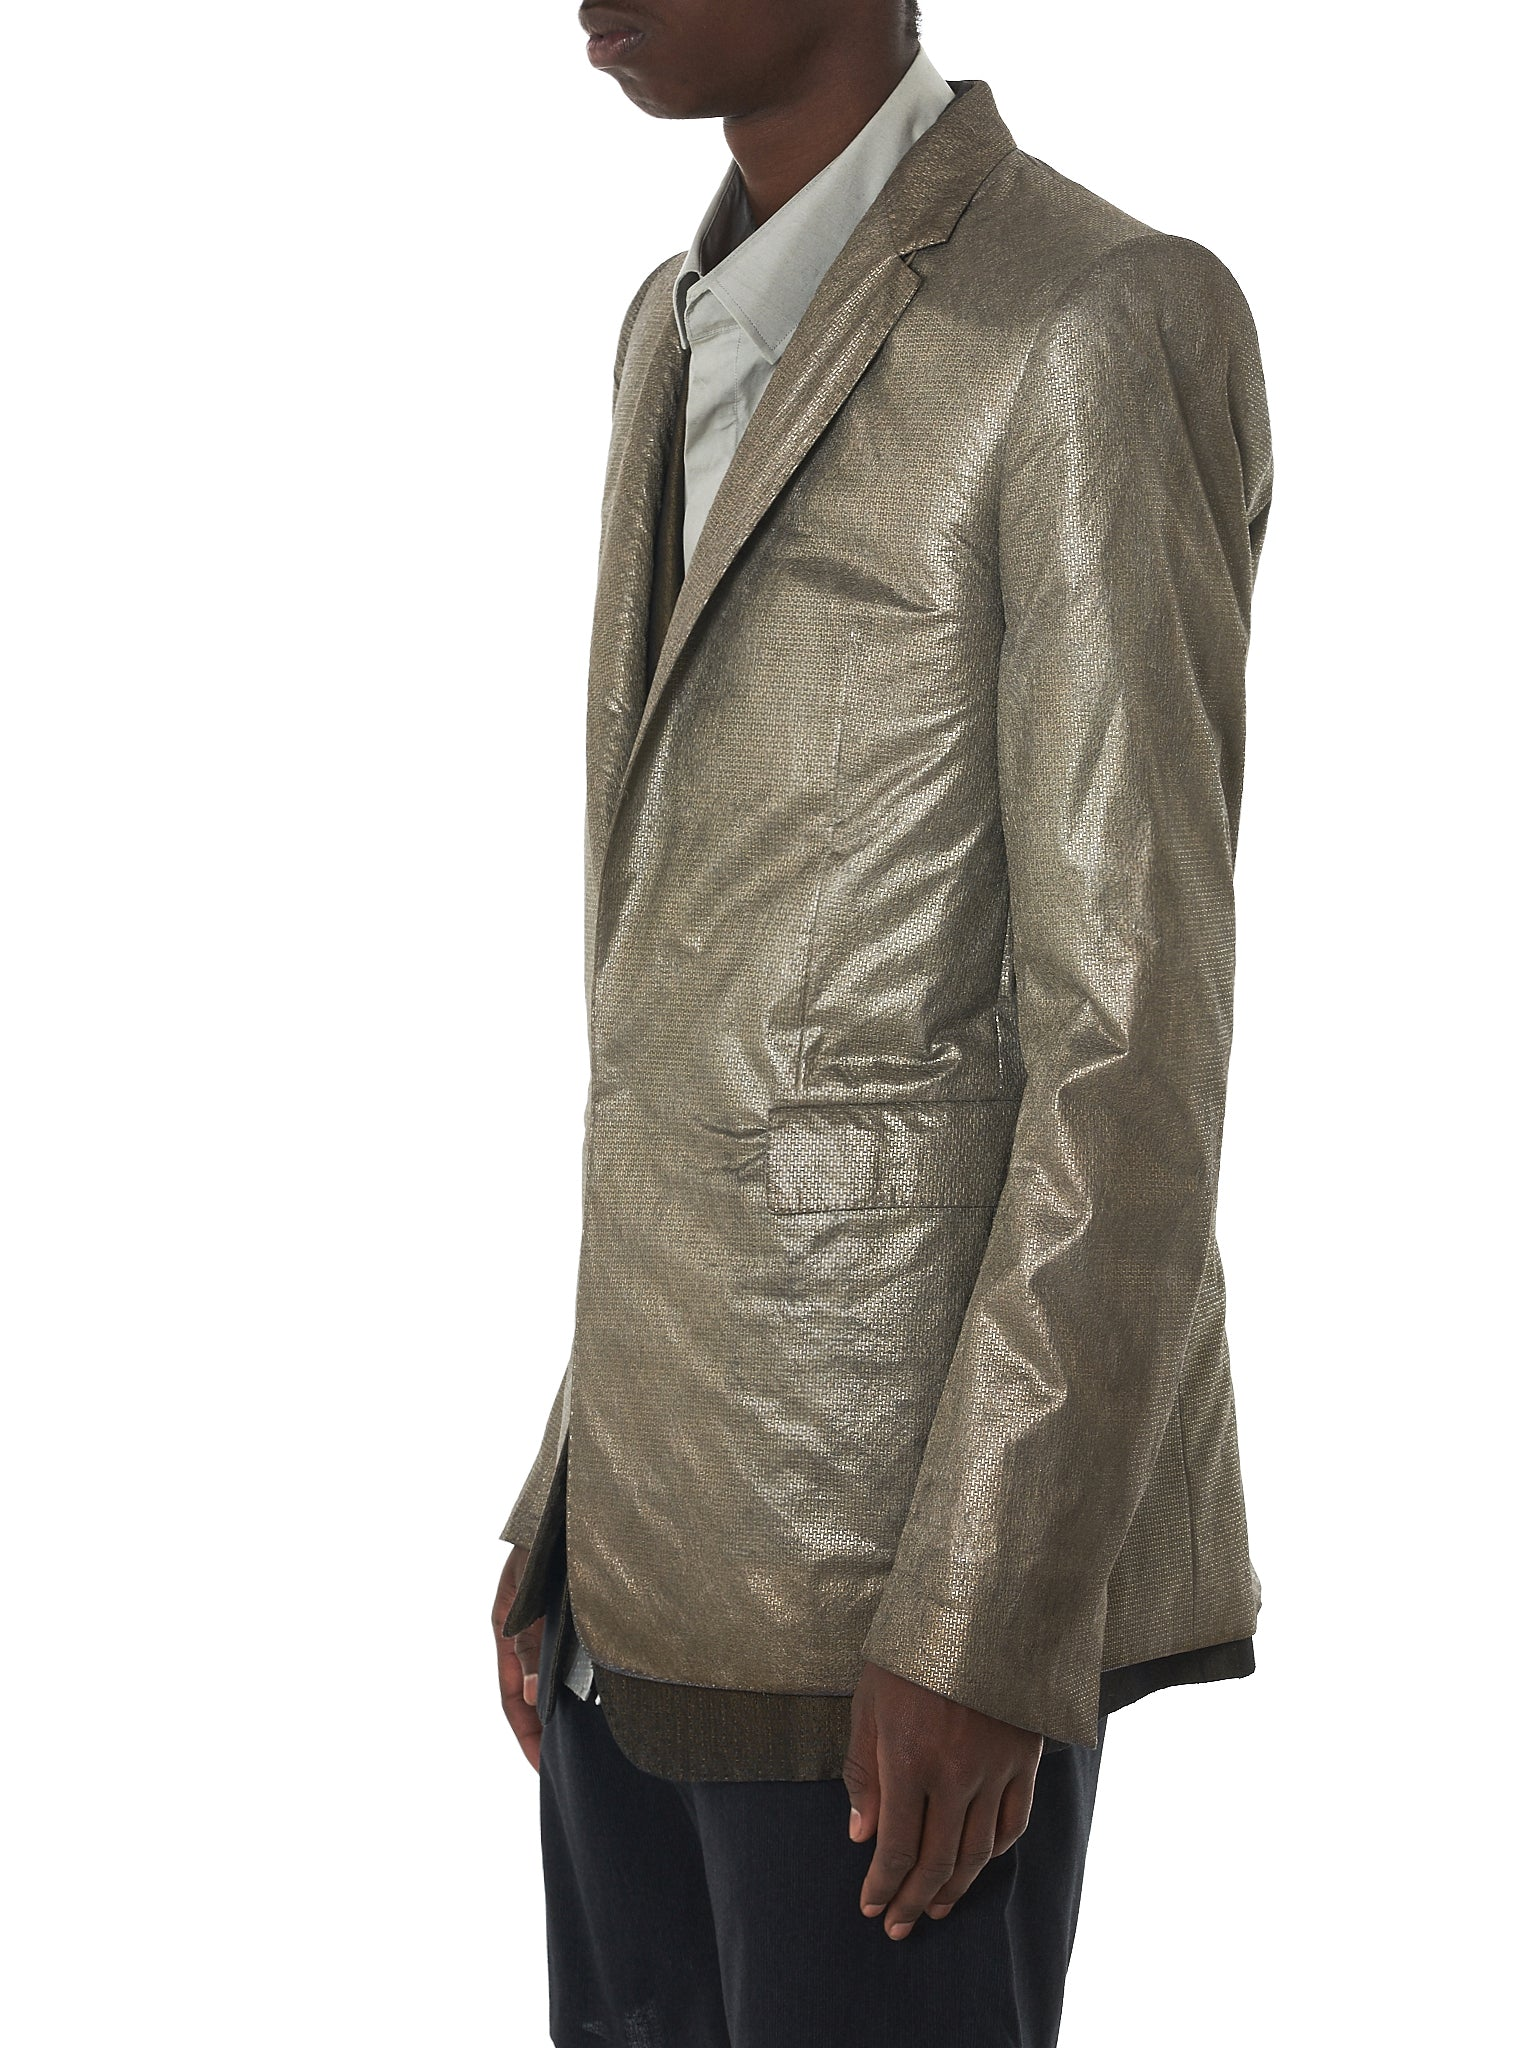 Deepti Oxidized Jacket - Hlorenzo Side